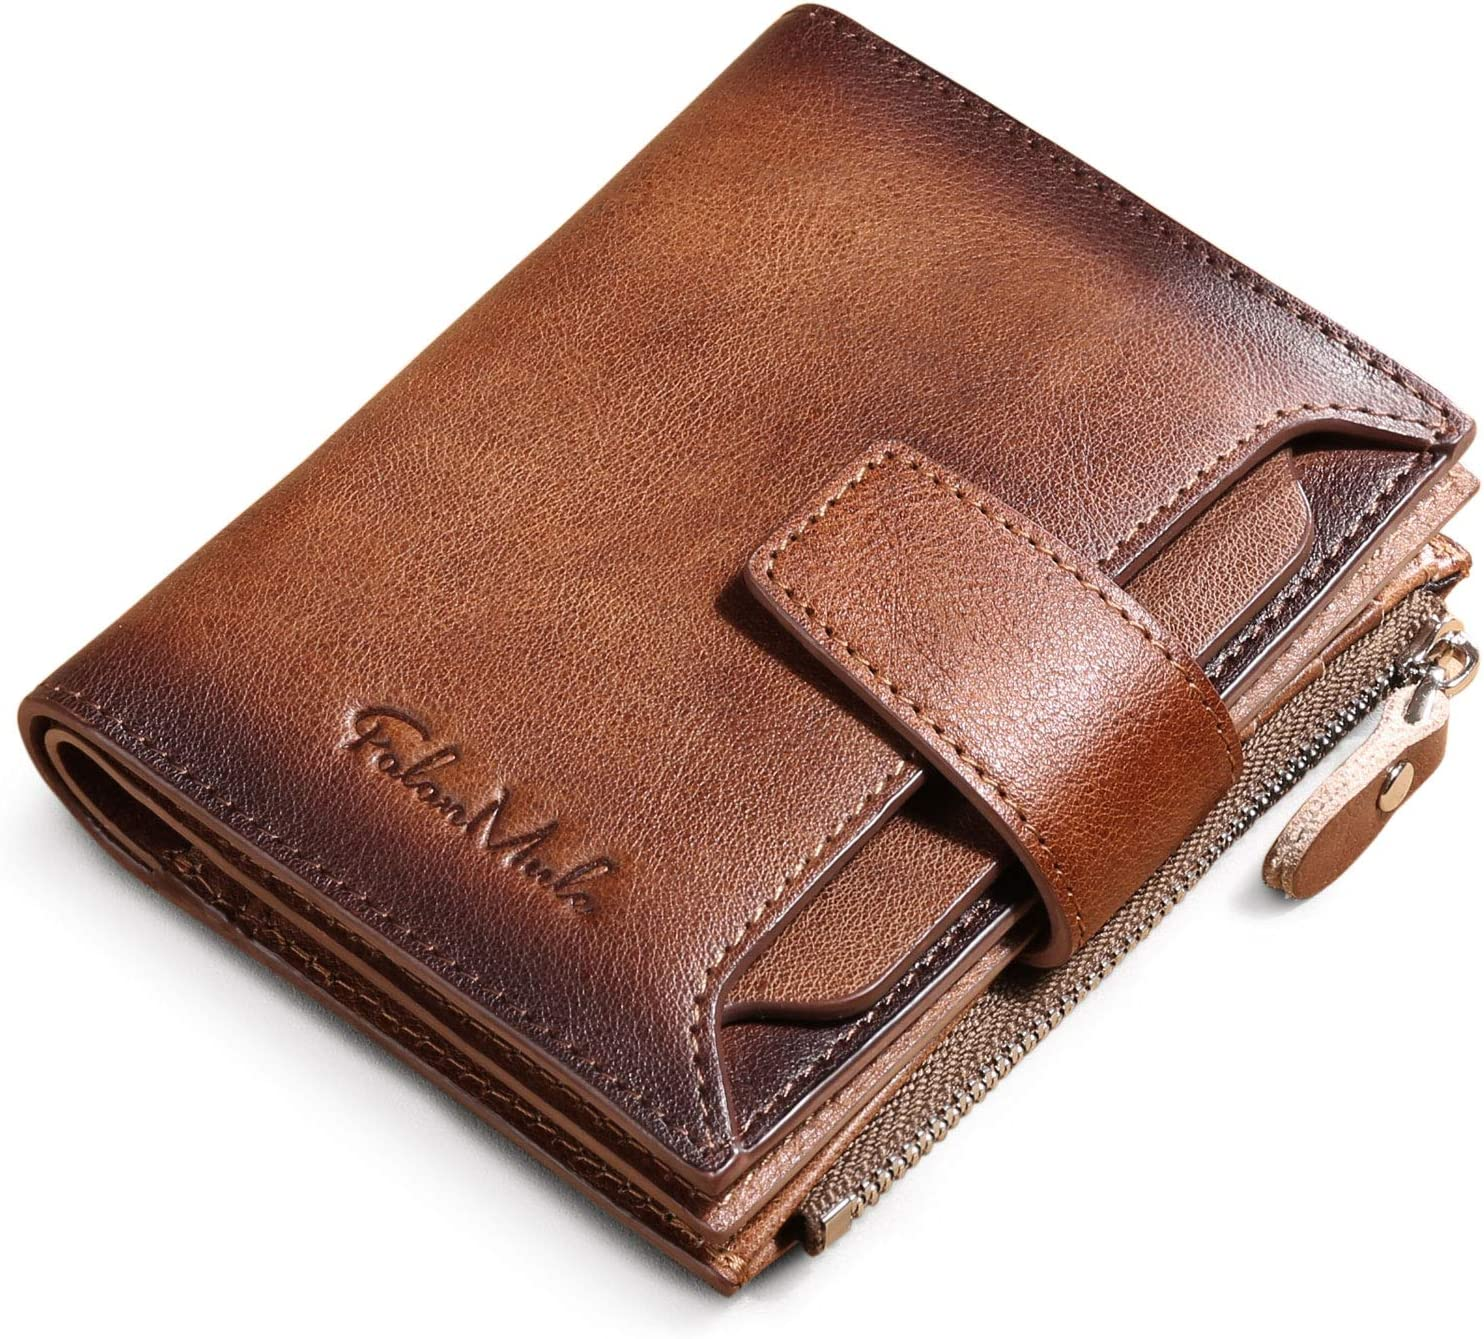 Men's Genuine Leather Wallet RFID Blocking Bifold Casual Wallet Large Capacity Zip Coin Pocket with 18 Card Slots & Removable Id Window